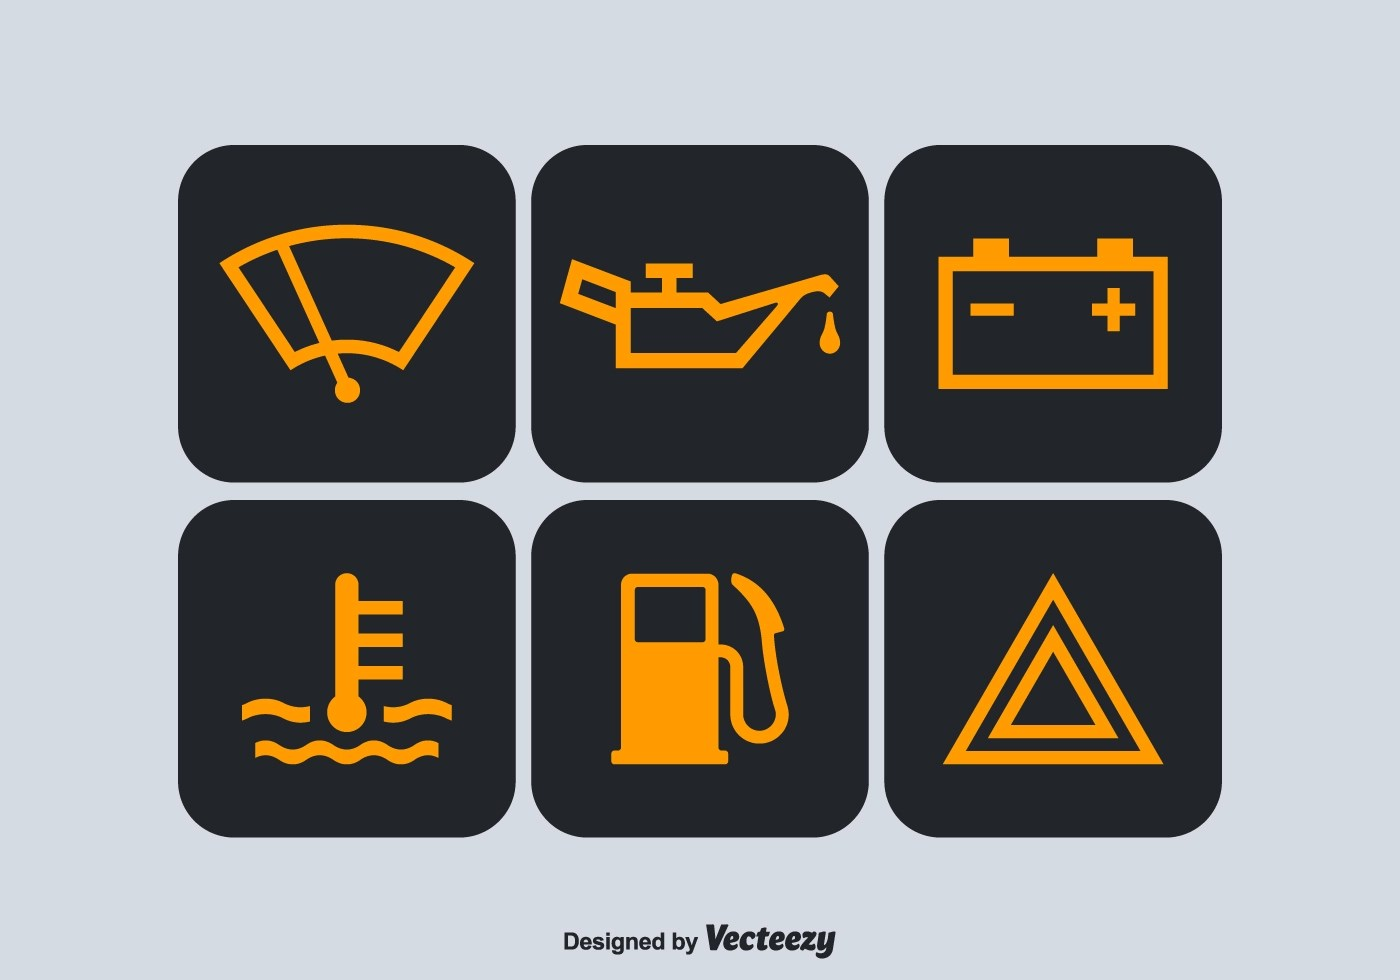 Warning Light Clipart Free Car Dashboard Vector Symbols Download Free Vector Art